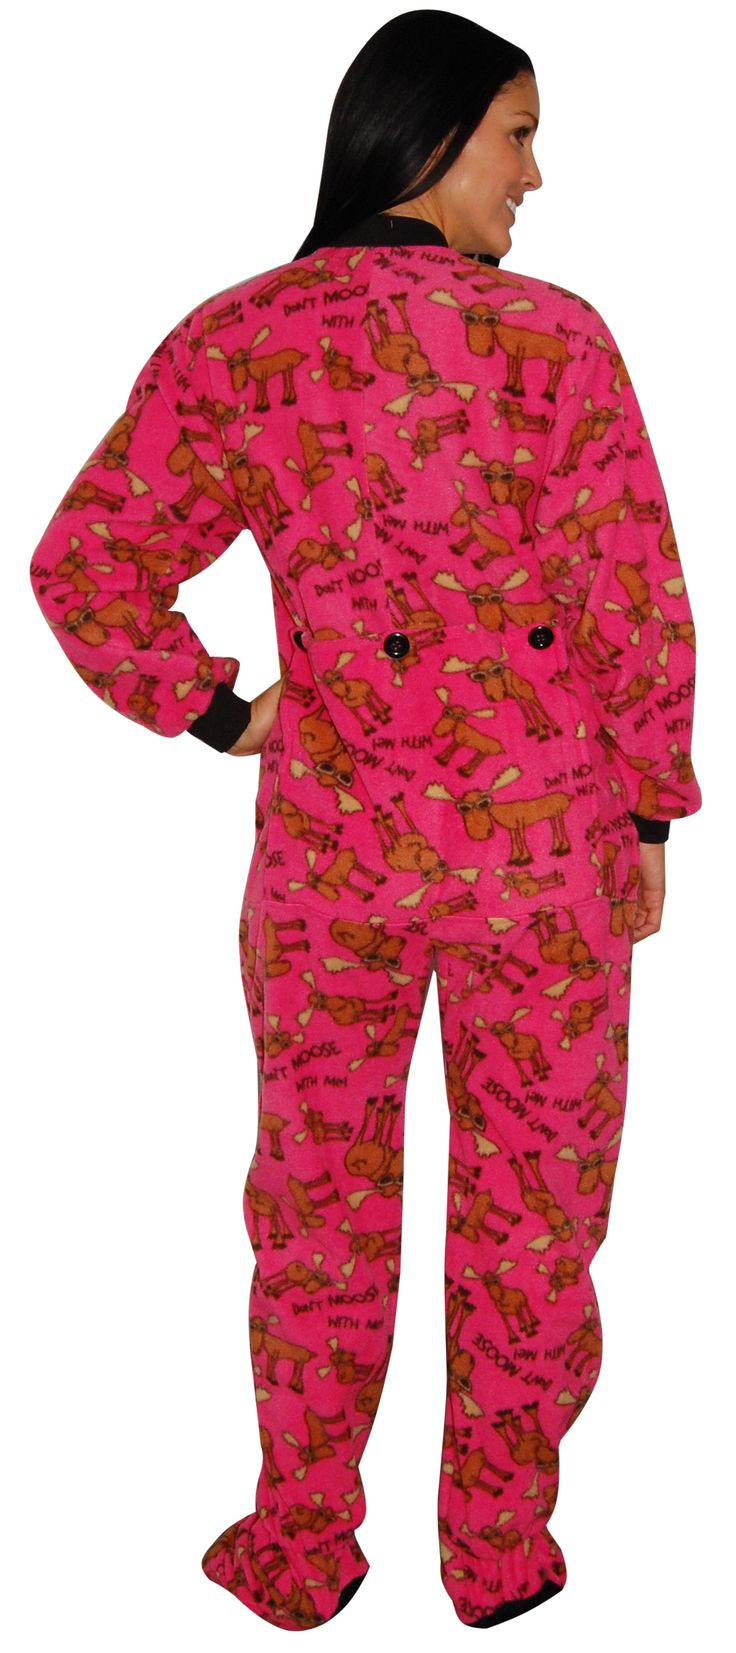 Lazy One Don't Moose Women's Footed Pajama